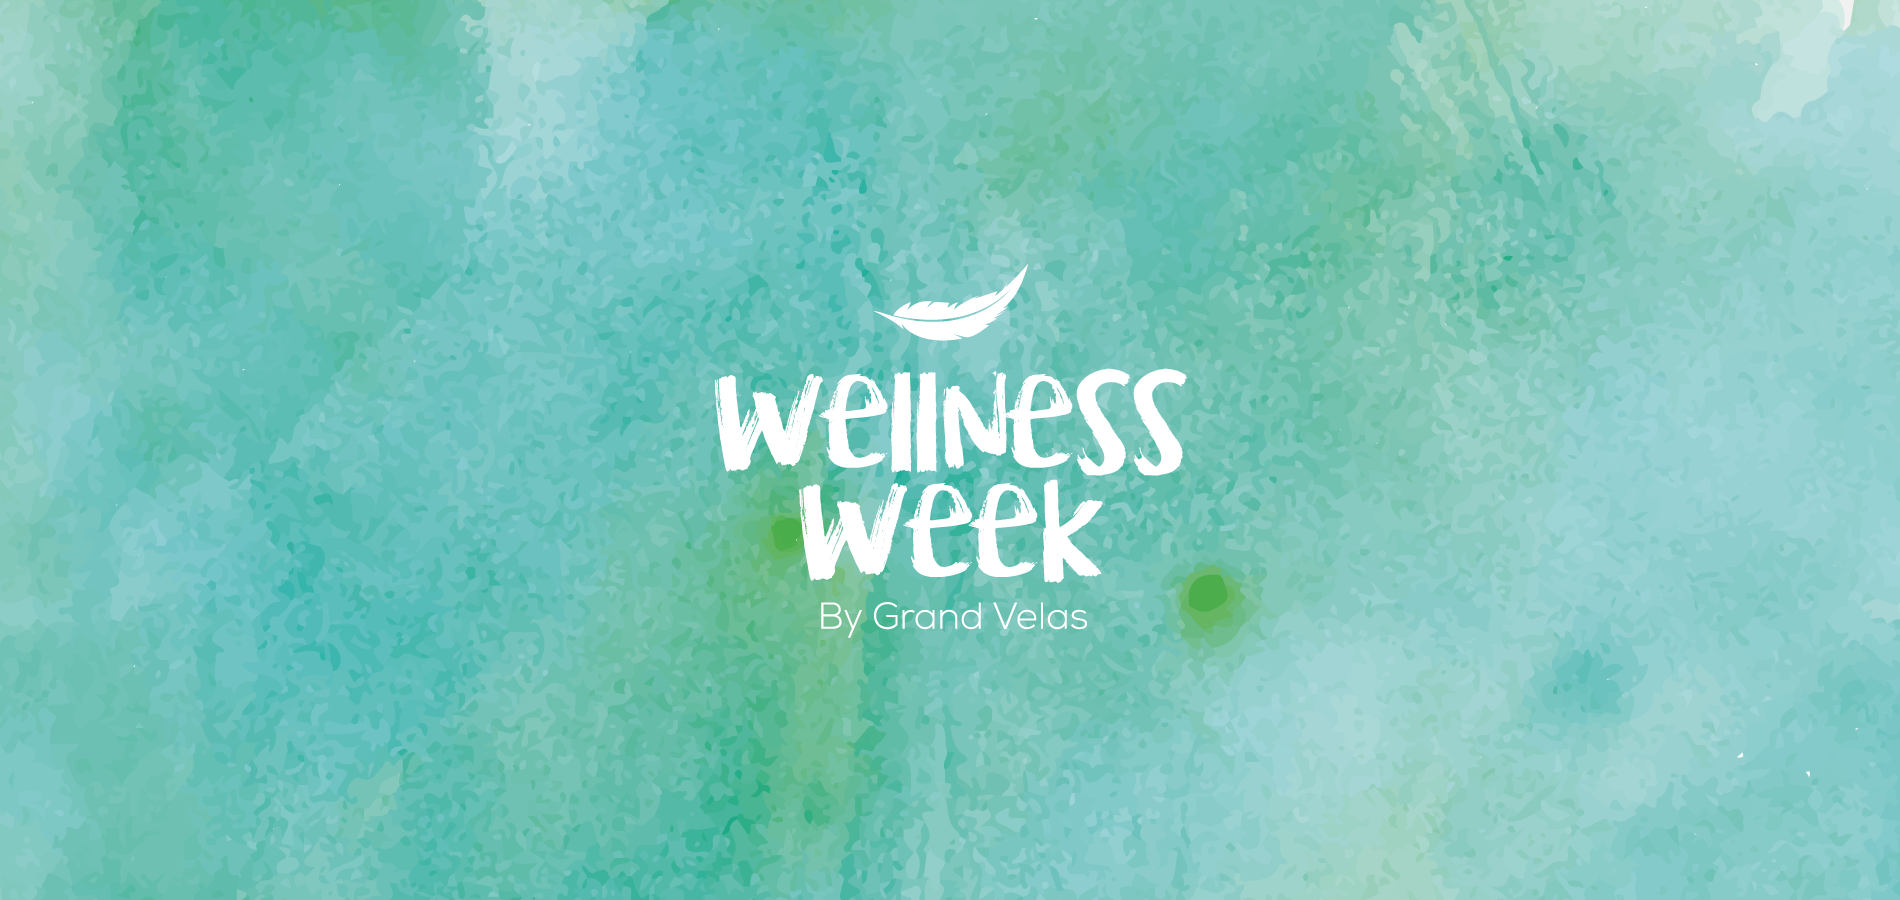 Wellness Week Grand Velas